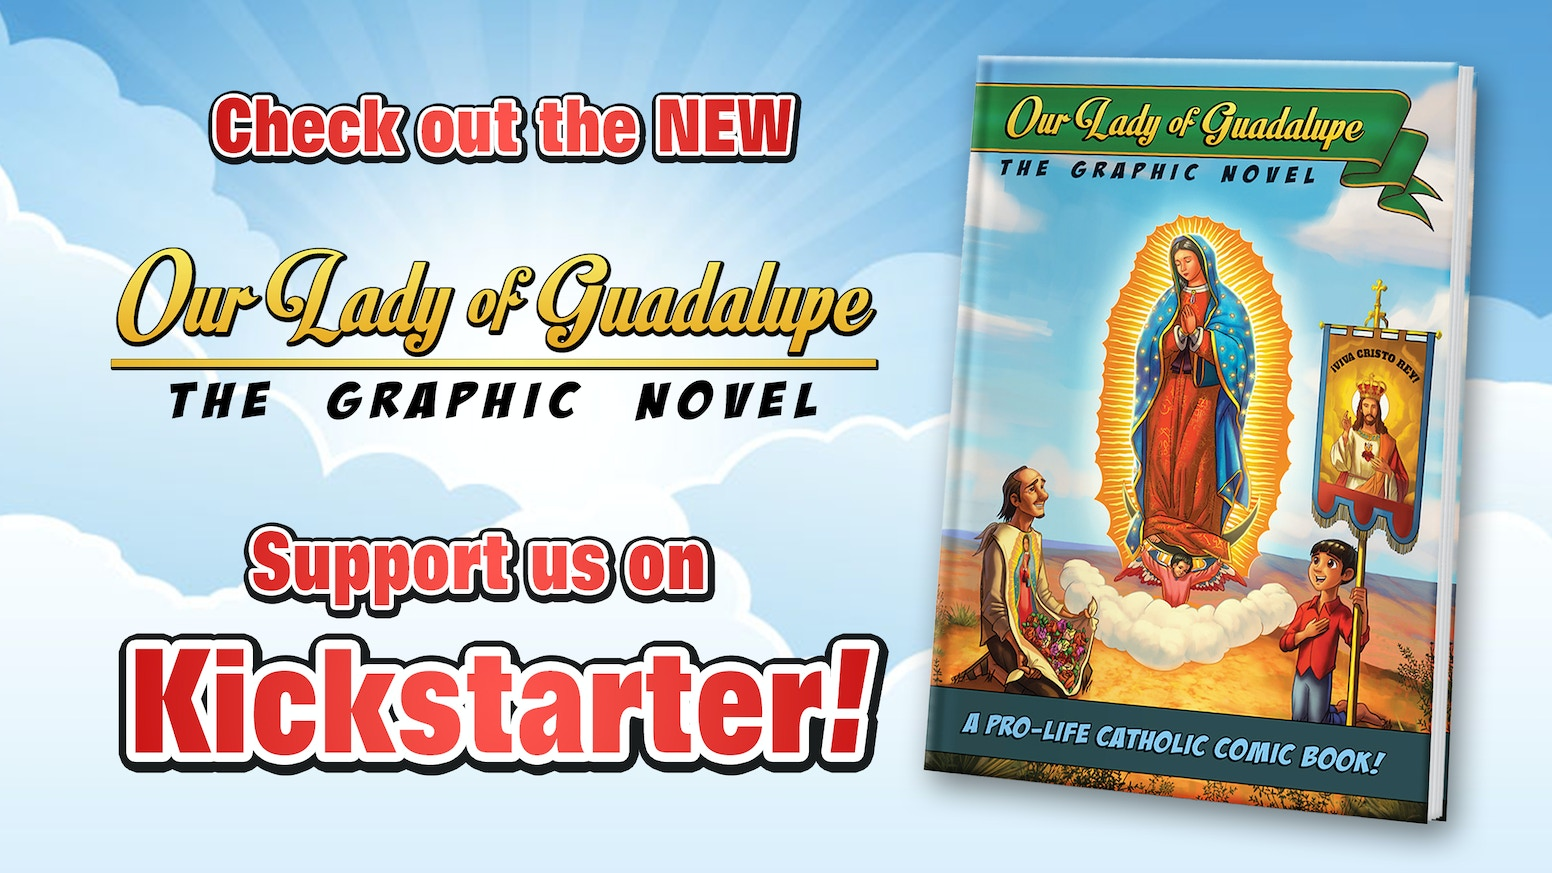 Our Lady of Guadalupe the Graphic Novel is an exciting history book in comic book form!